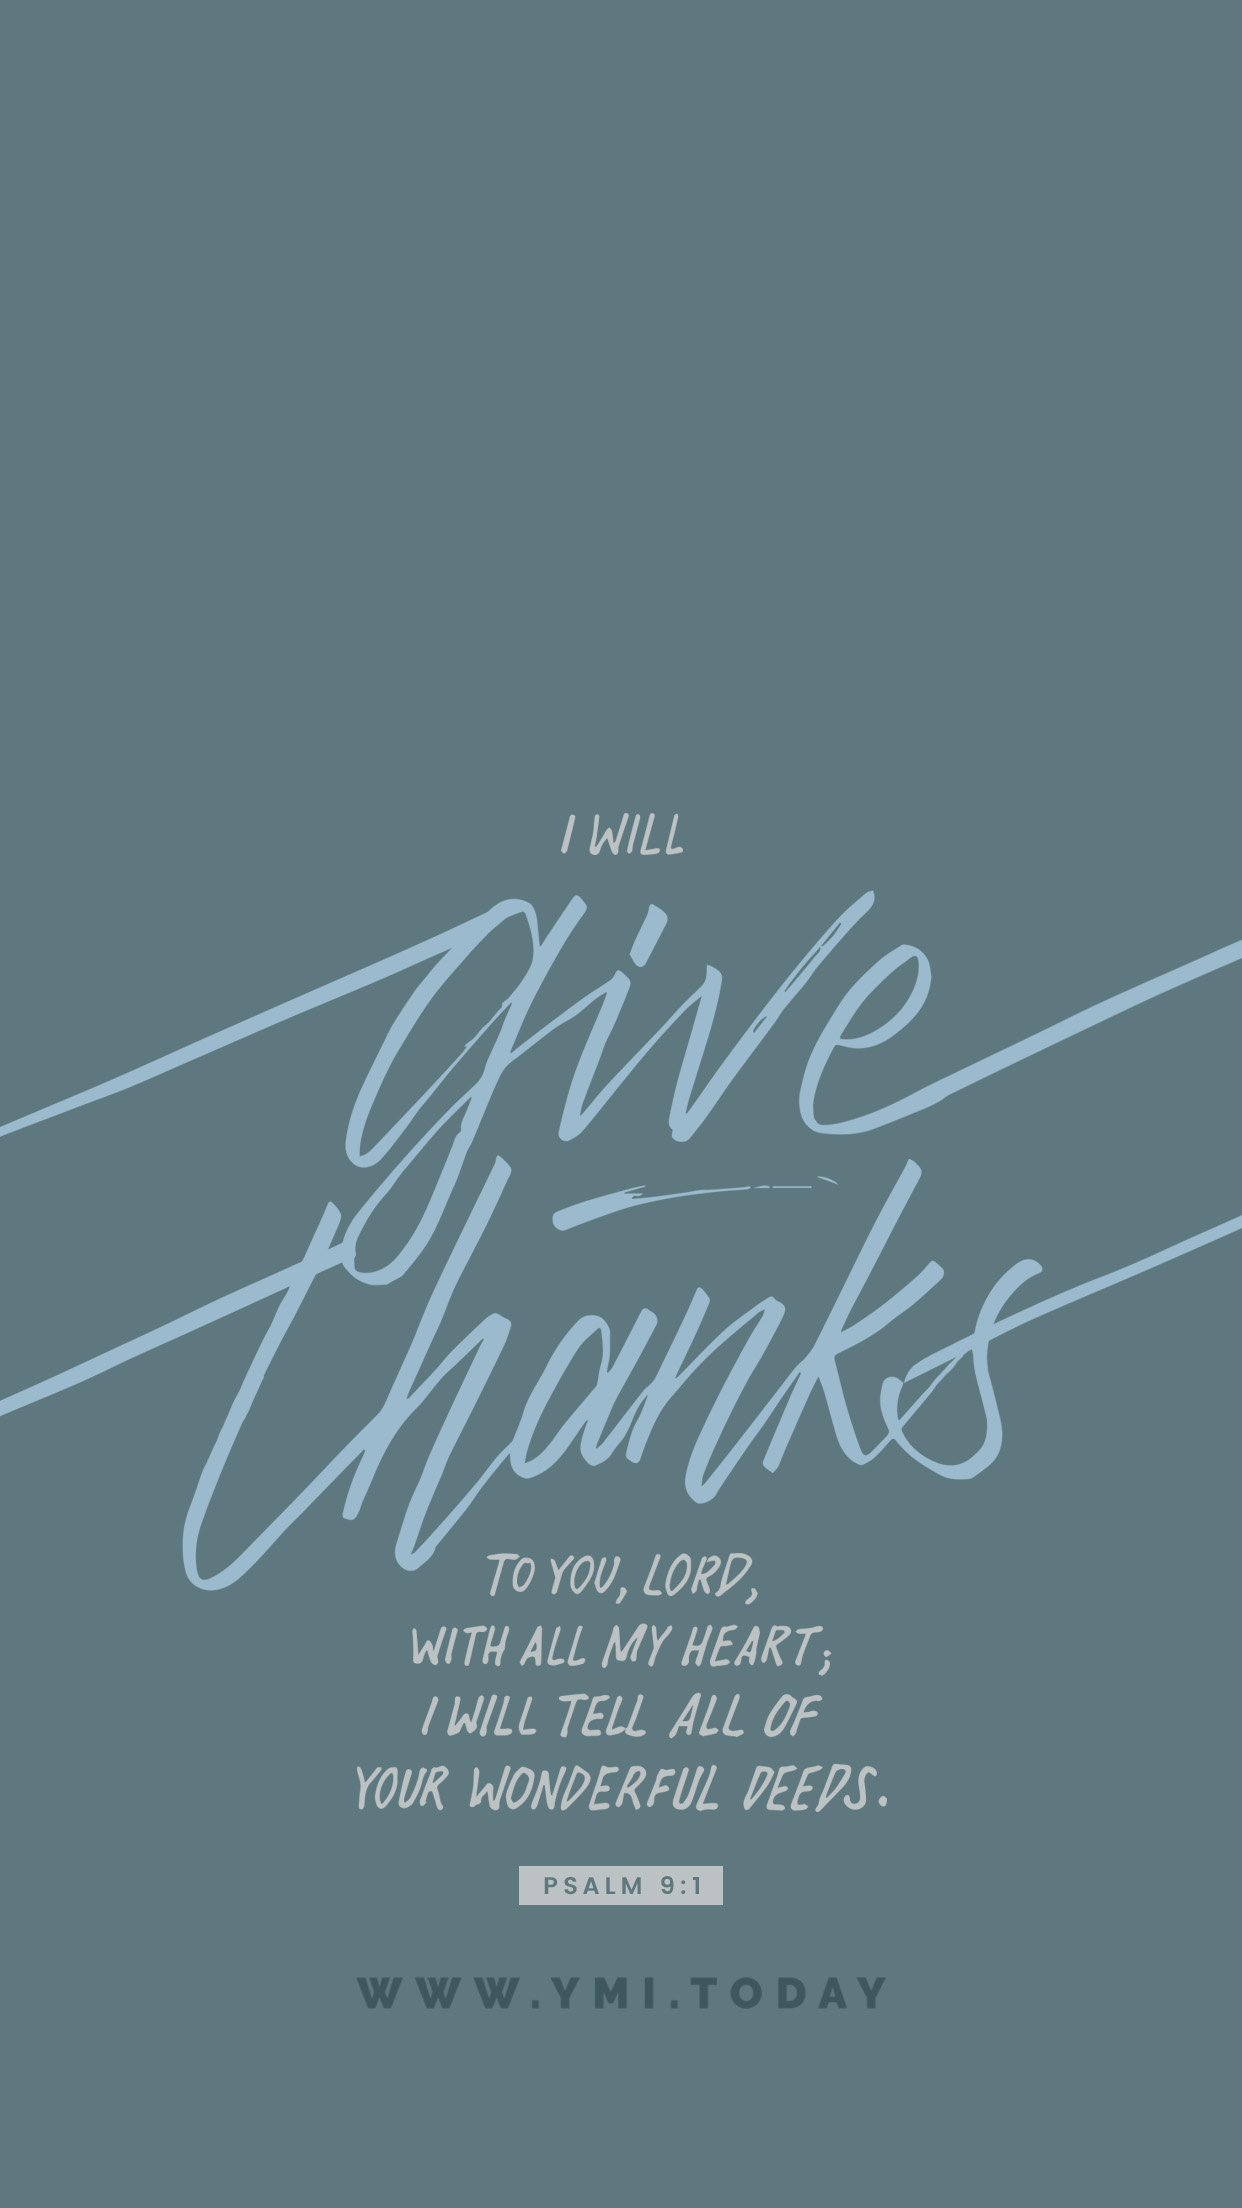 YMI February 2019 Phone Lockscreen - I will give thanks to You, Lord with all my heart; I will tell of all Your wonderful deeds. - Psalm 9:1